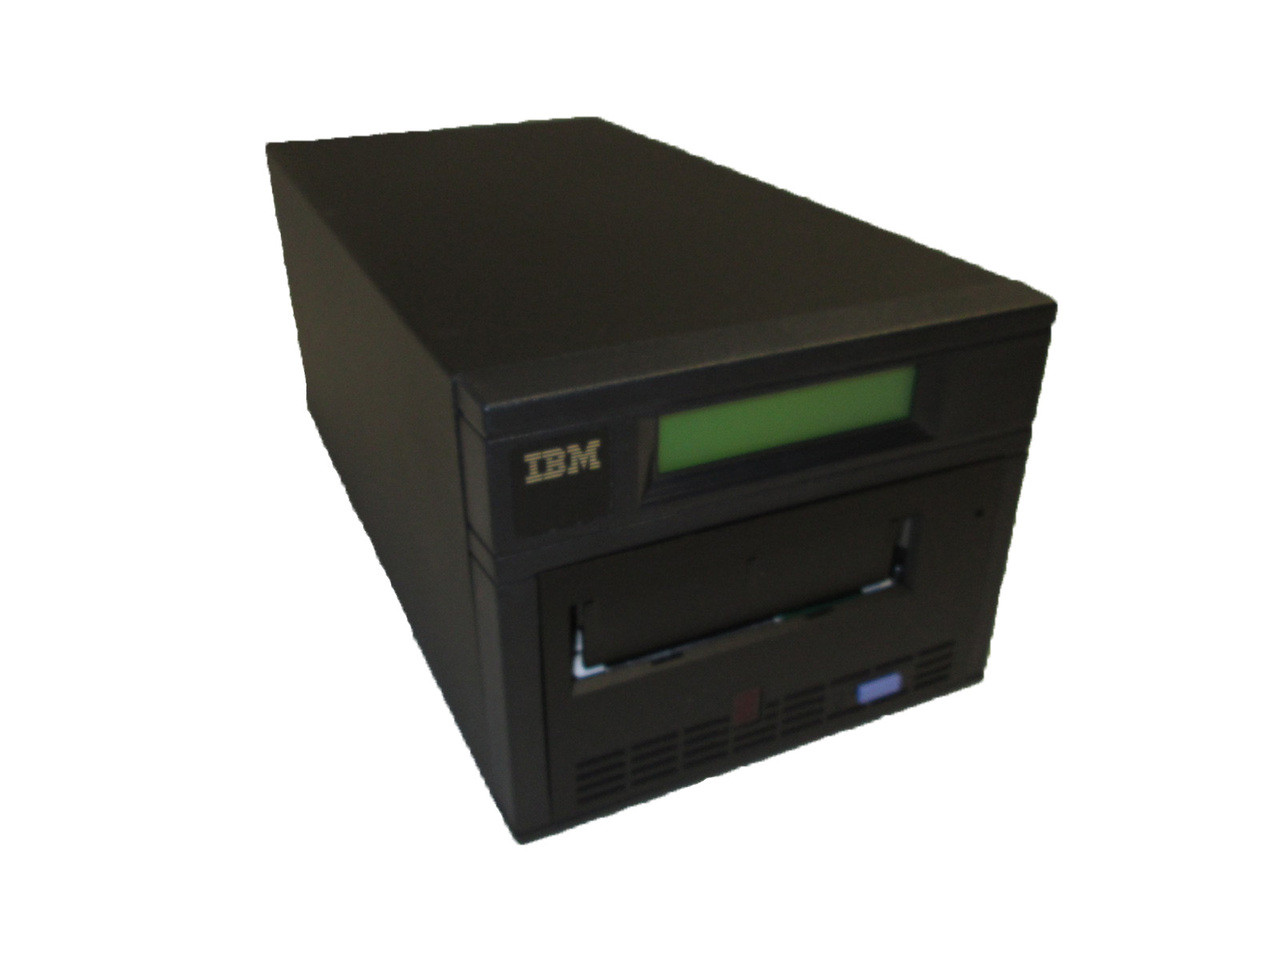 IBM L23 DRIVER FOR WINDOWS XP